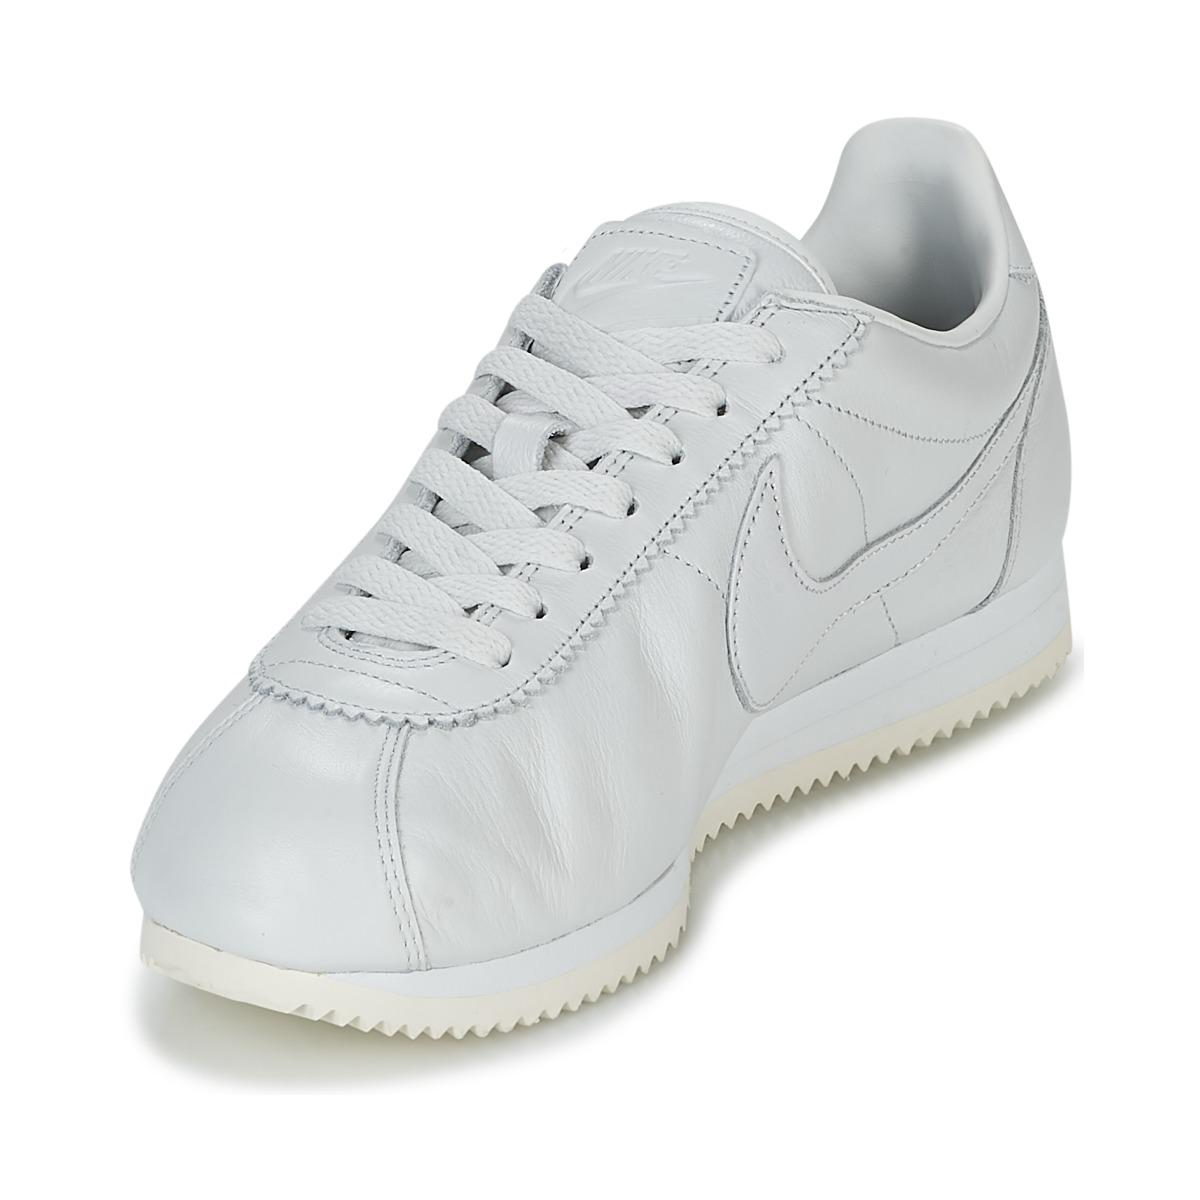 the latest 75329 914f4 Nike - Classic Cortez Premium Men s Shoes (trainers) In White for Men - Lyst.  View fullscreen